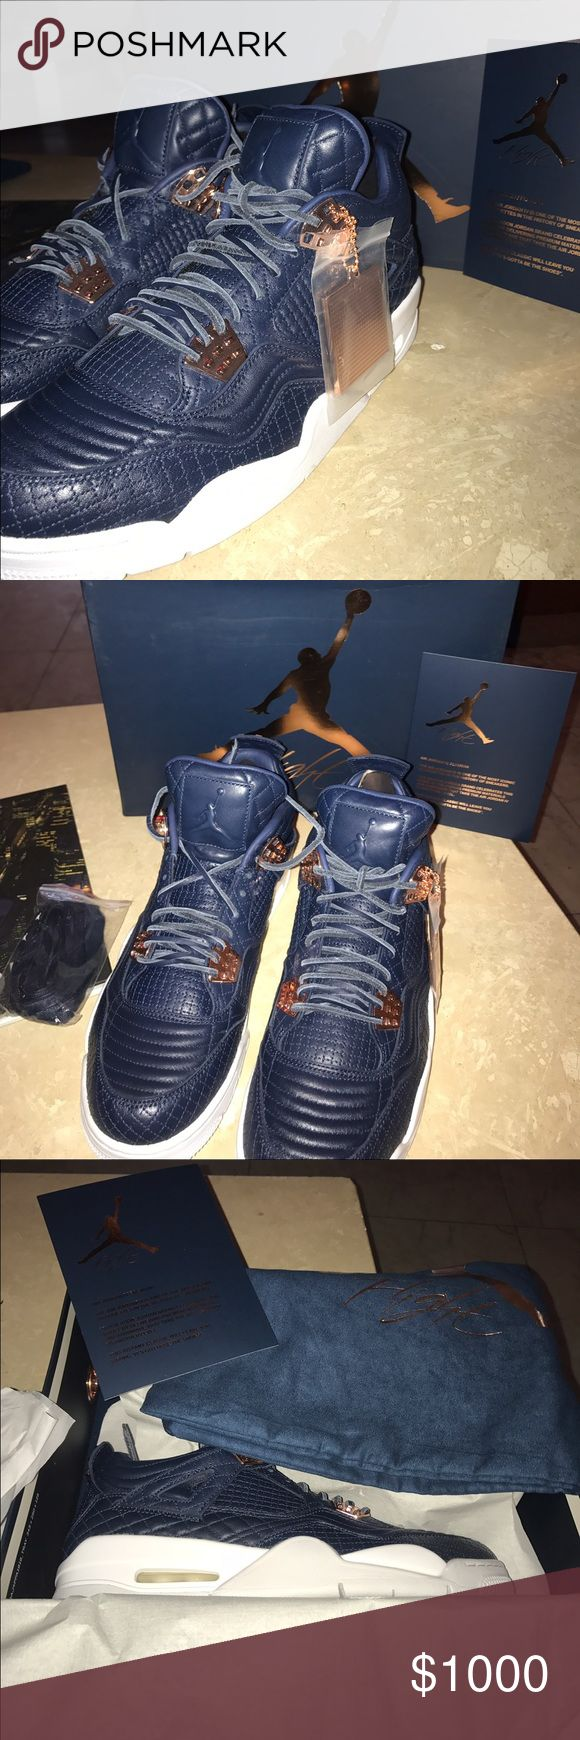 Jordan retro 4 obsidian Jordan retro 4 obsidian brand new in box 1000 each last two 10.5 pairs left in circulation on the whole market extremely rare shoe not just anybody has them Jordan Shoes Sneakers